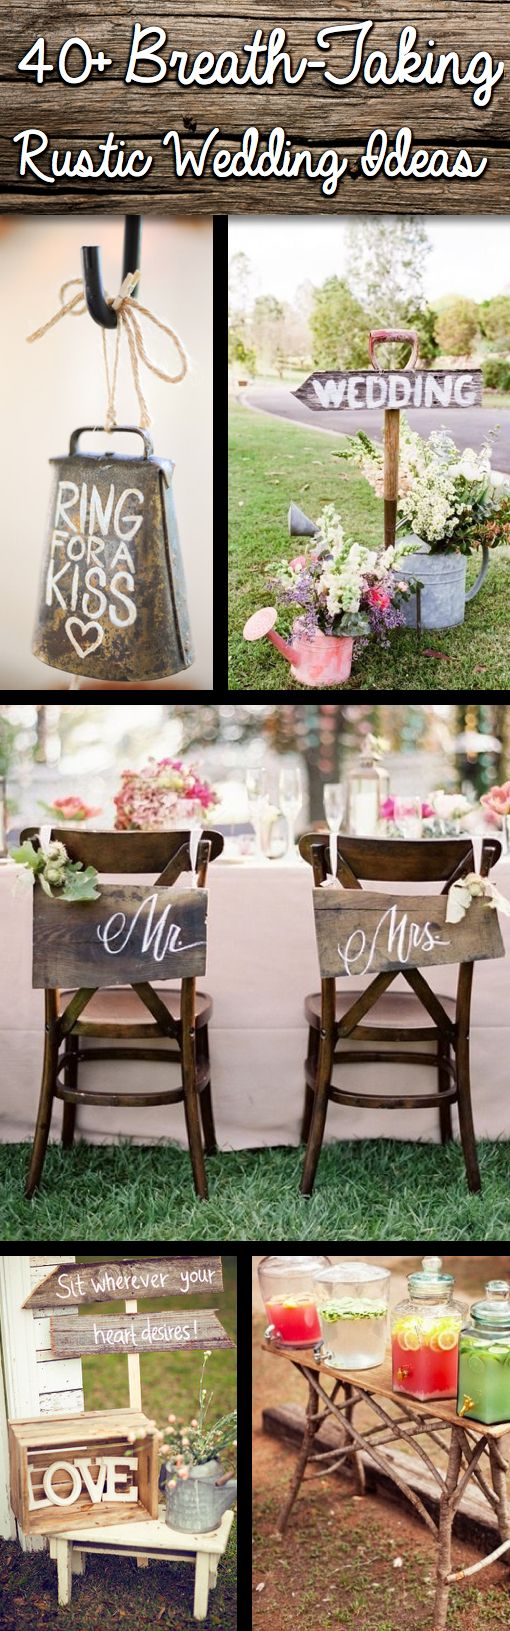 Rustic Wedding Ideas & Inspiration ♡